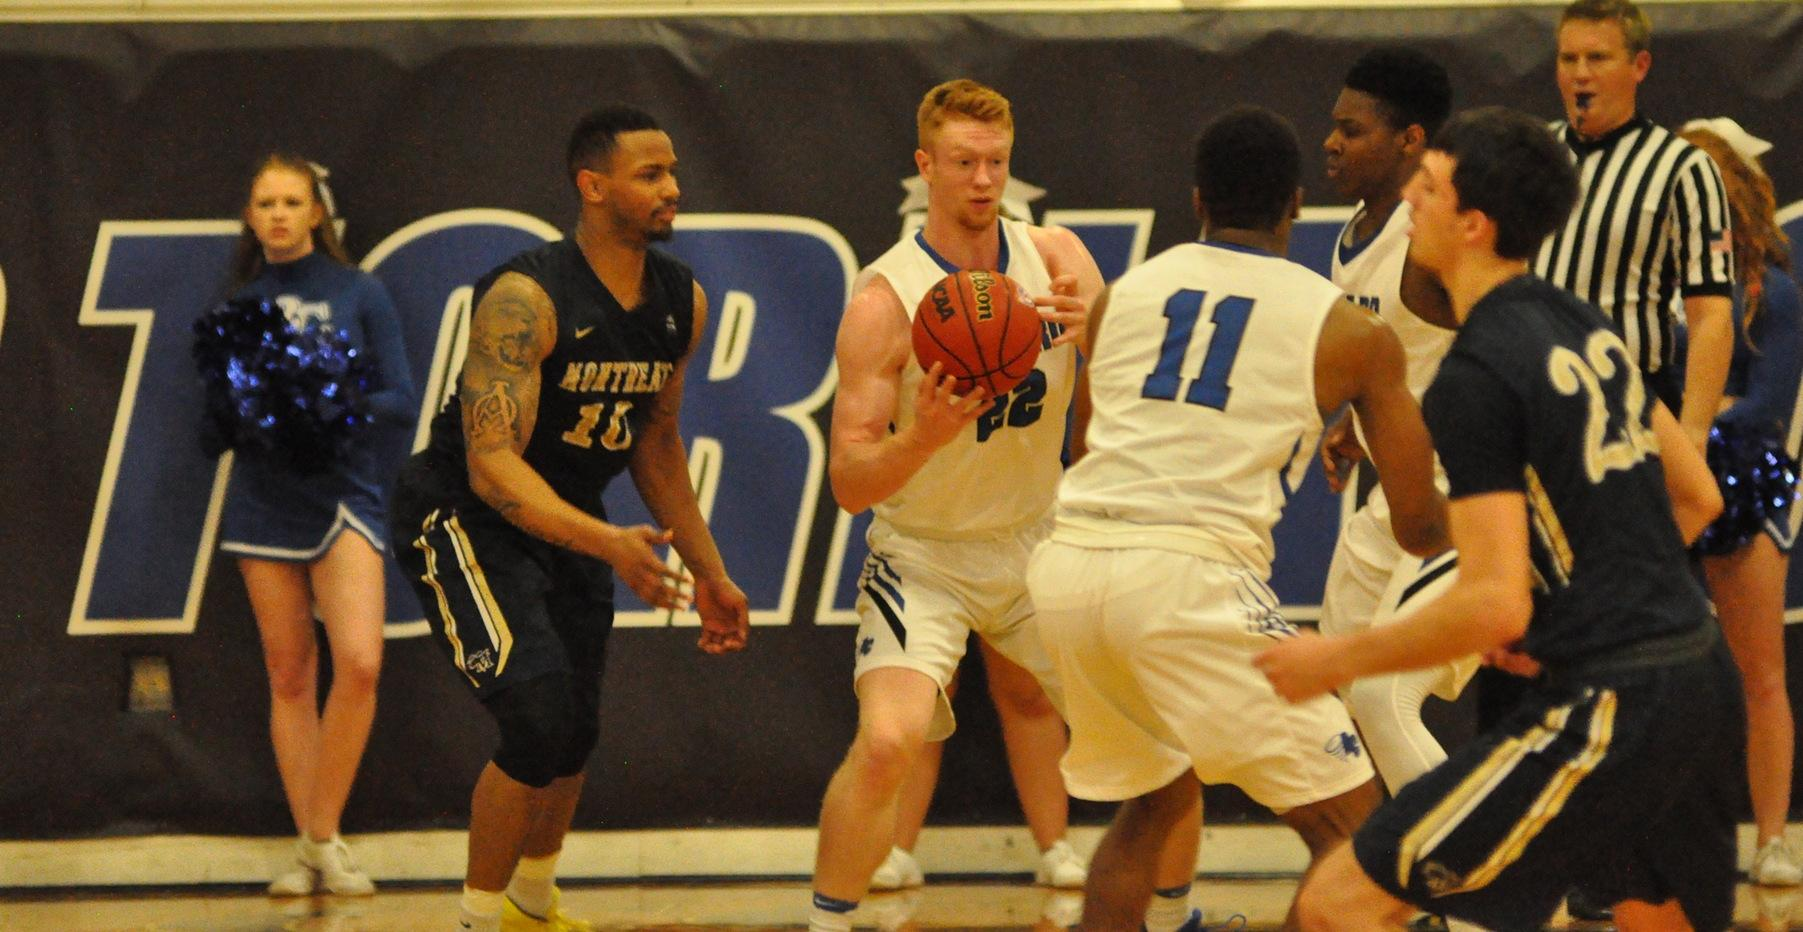 Montreat Downs Tornados 103-78